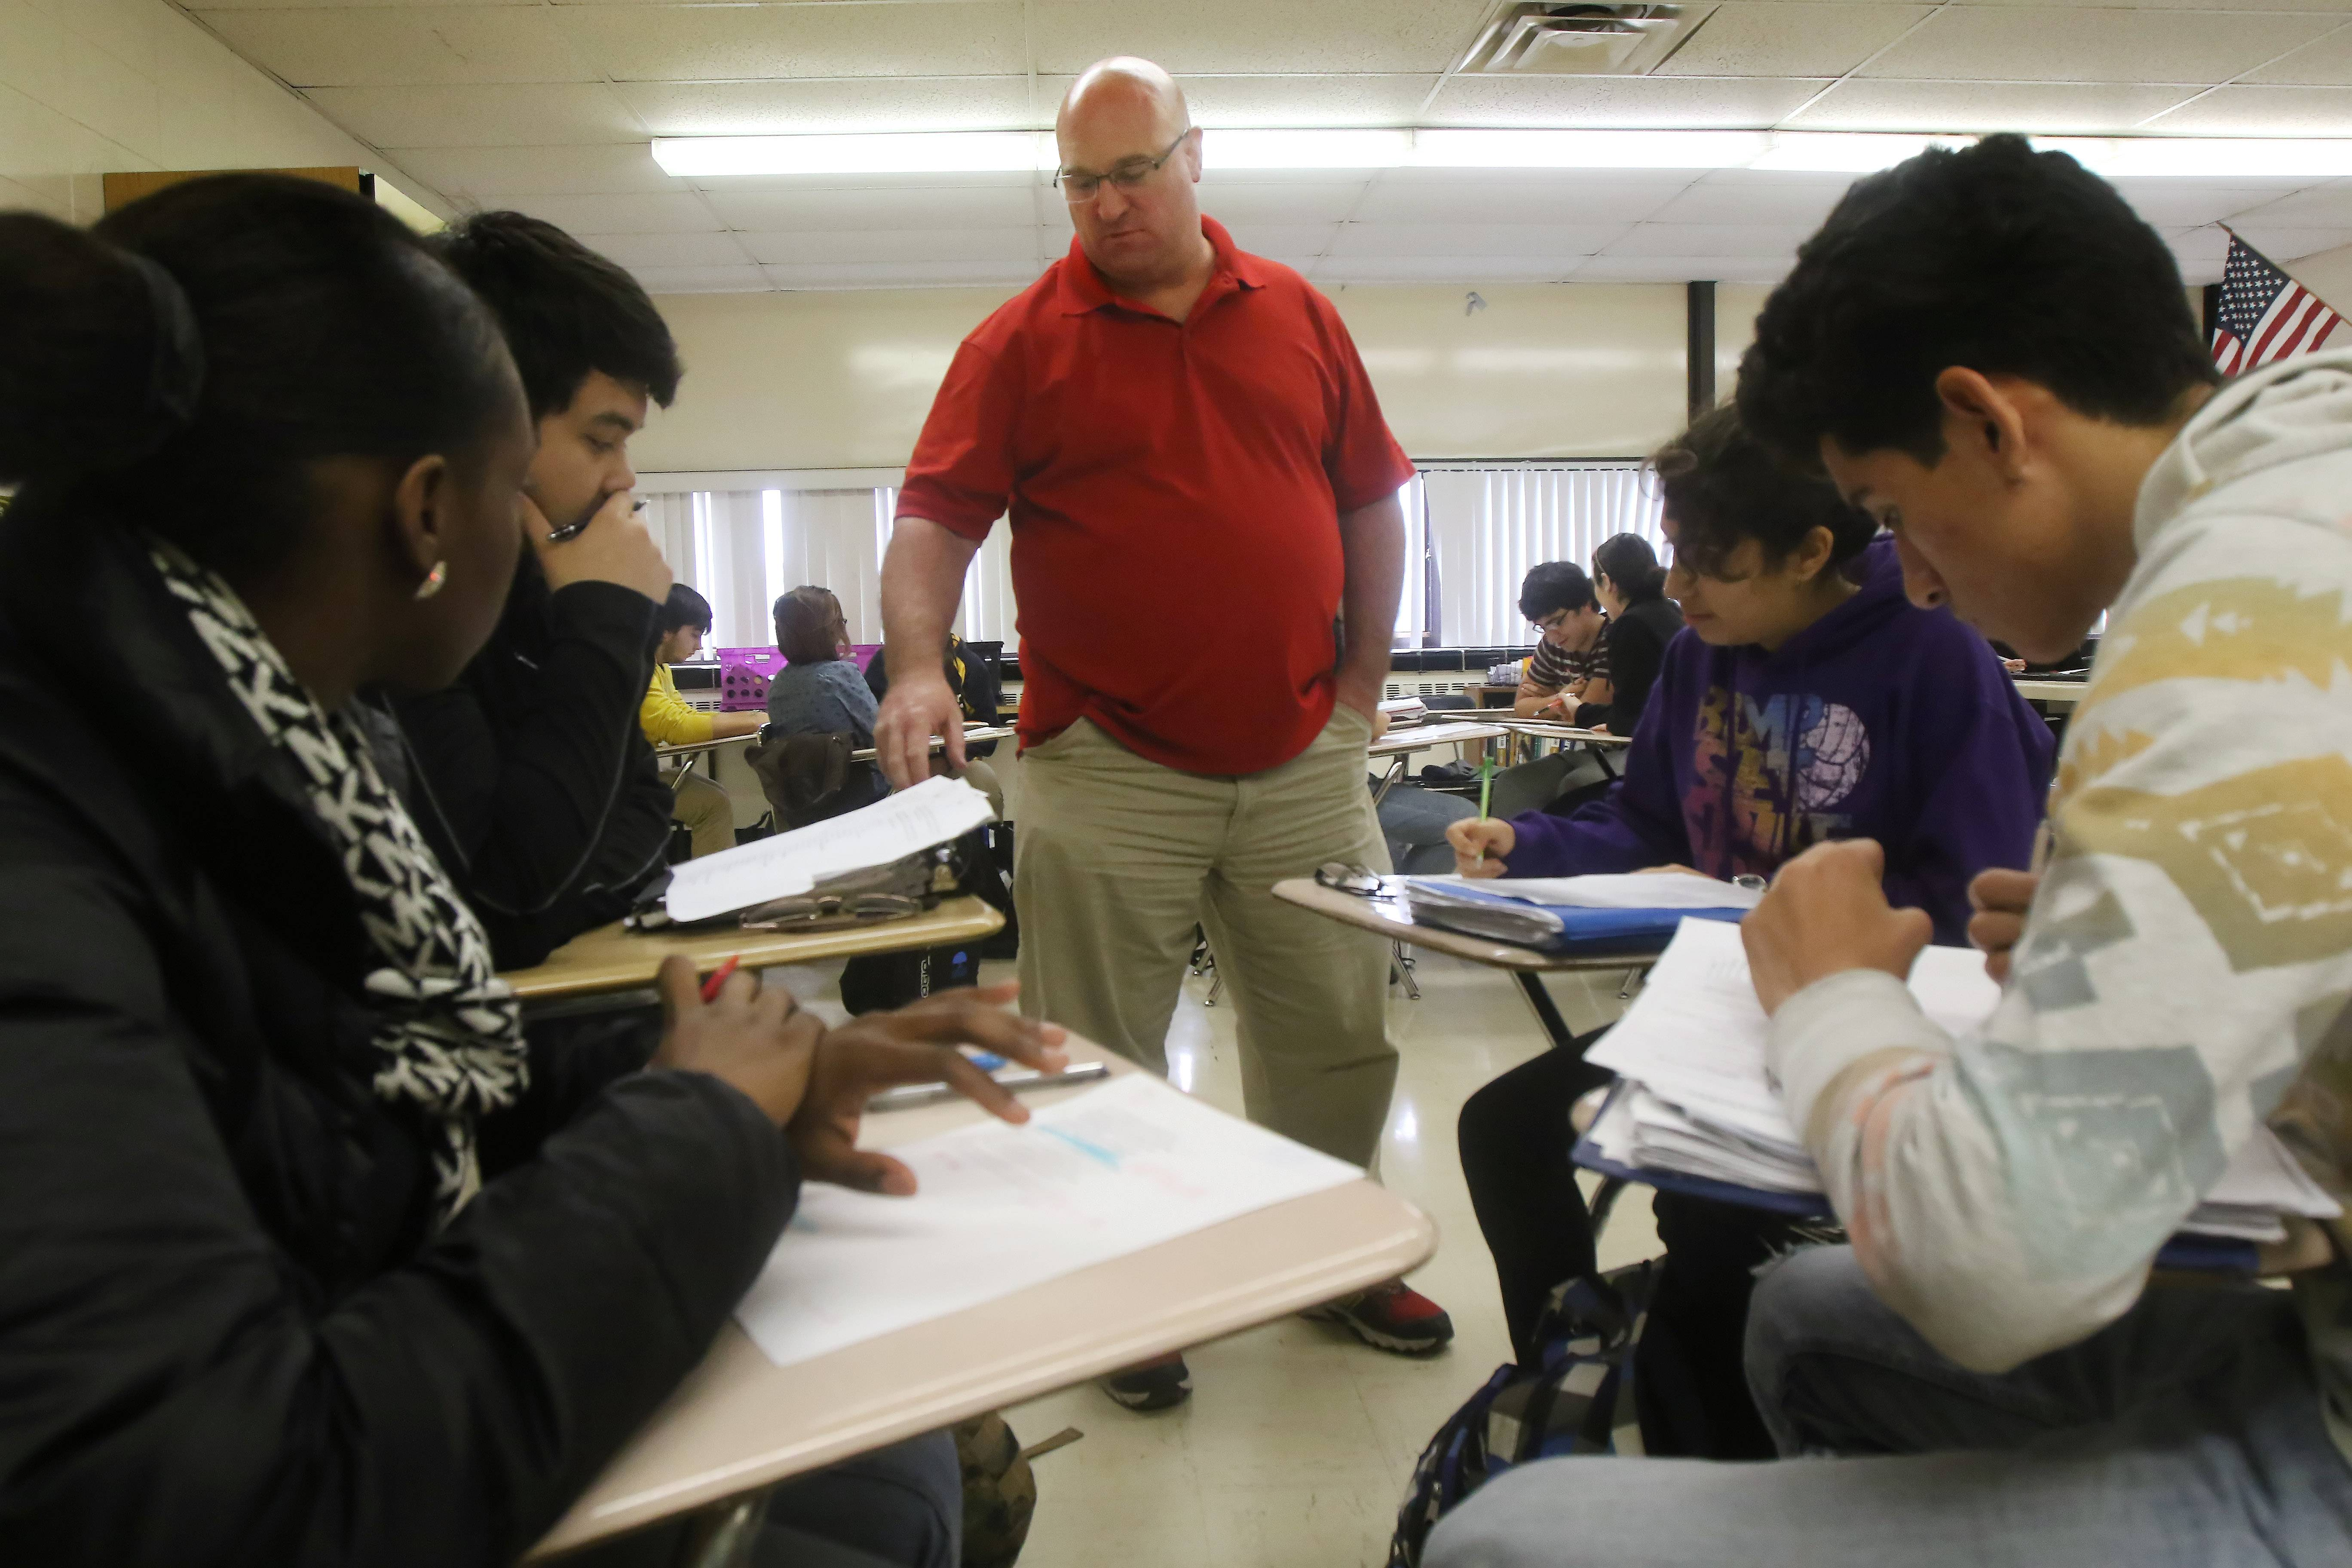 Teacher Bob Diedrich works with students on a paper about Shakespeare sonnets as he teaches an Advanced Placement literature class at Round Lake High School.